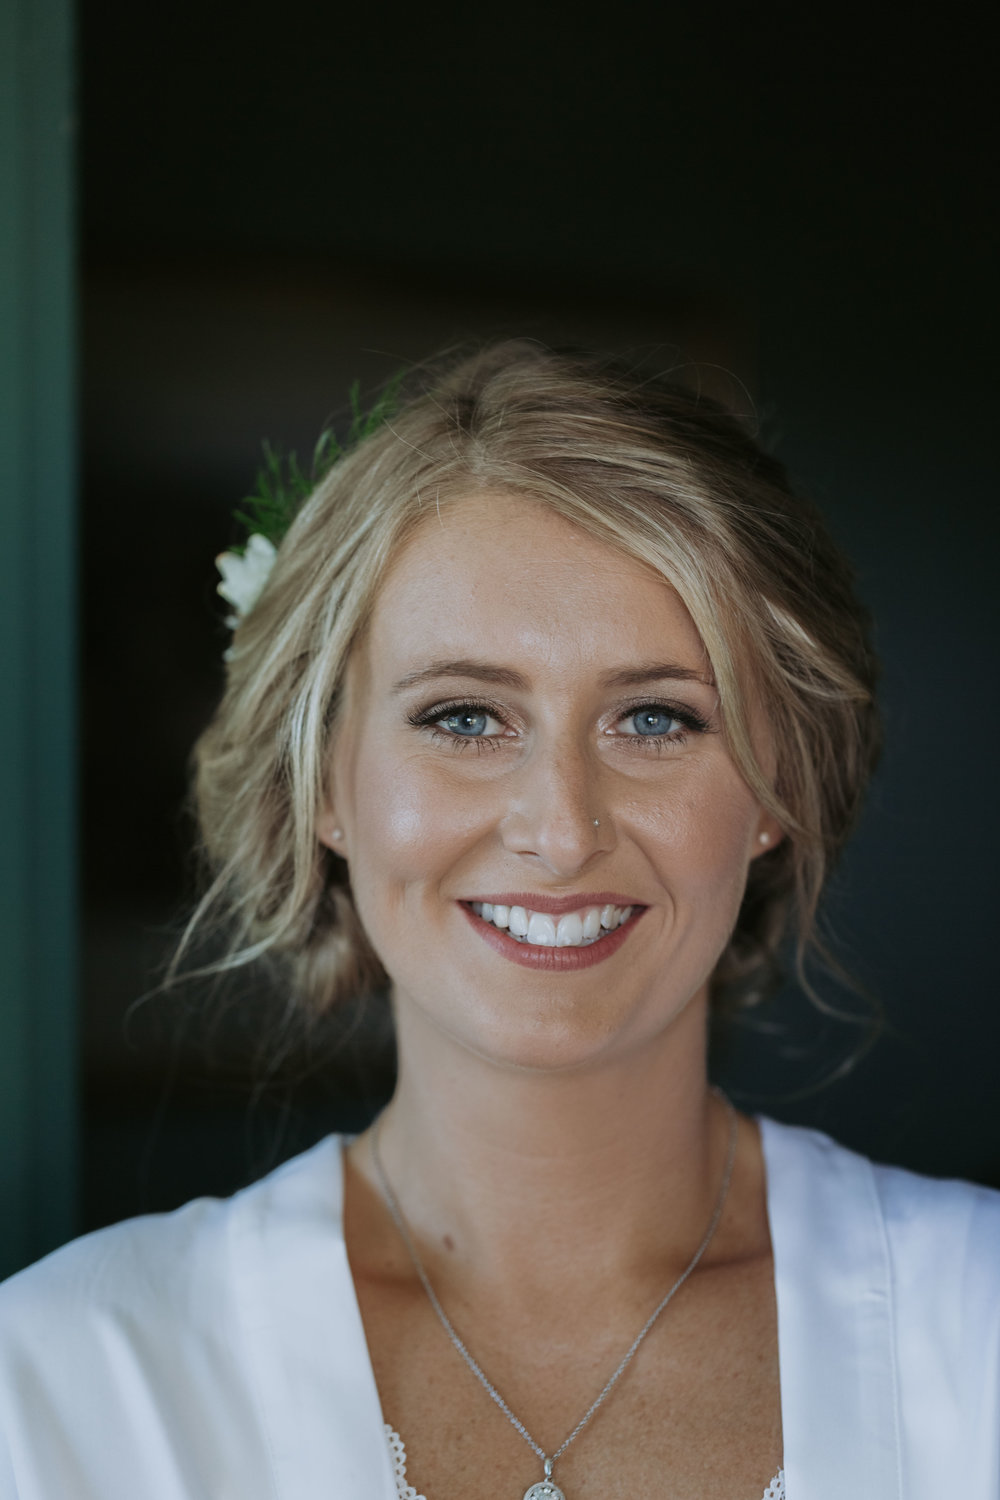 Bride smiling photo. Natural, relaxed wedding photography Kiama